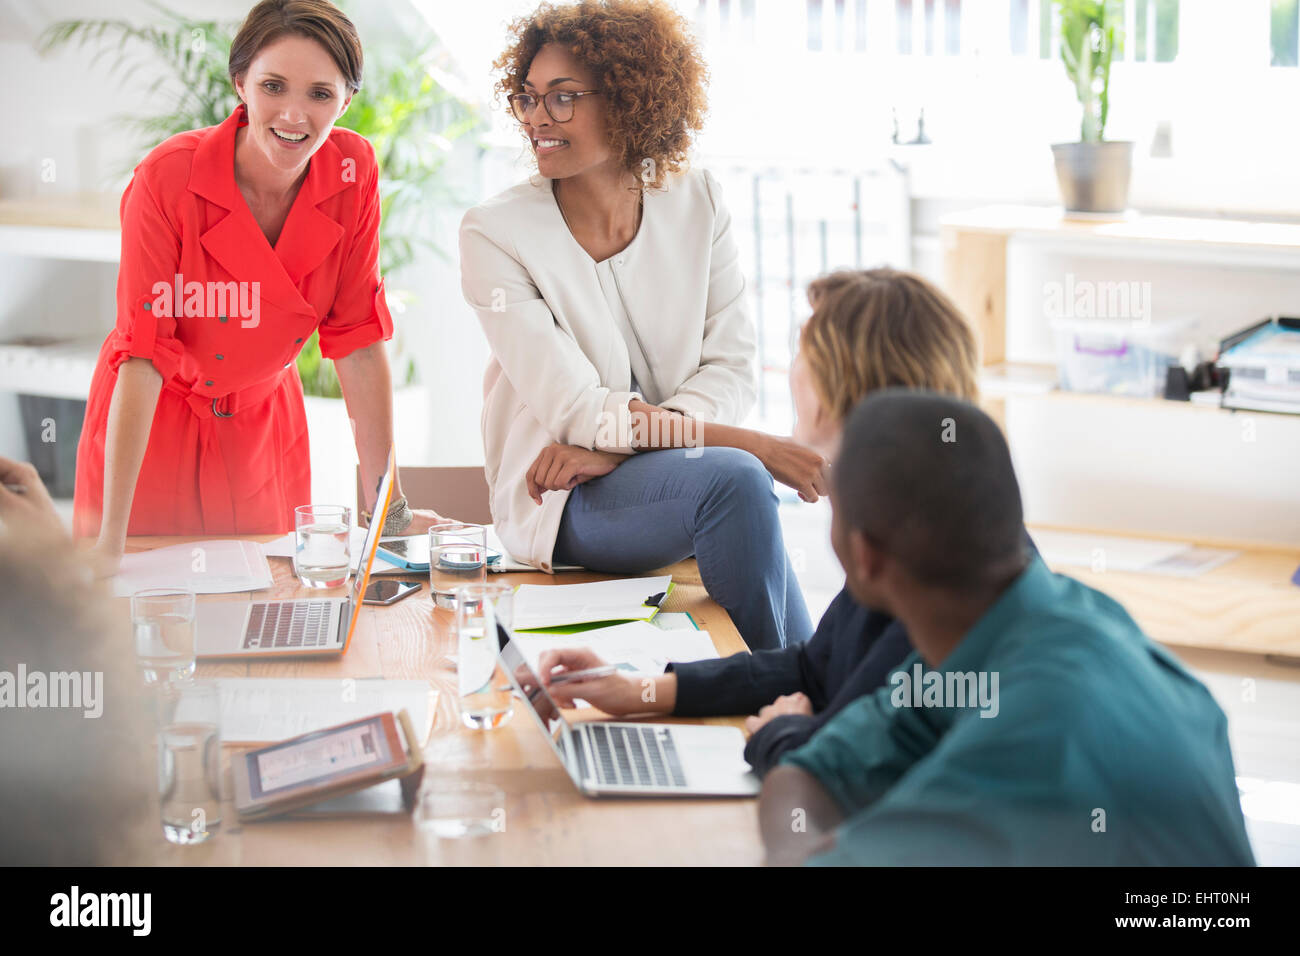 Office workers talking at desk - Stock Image